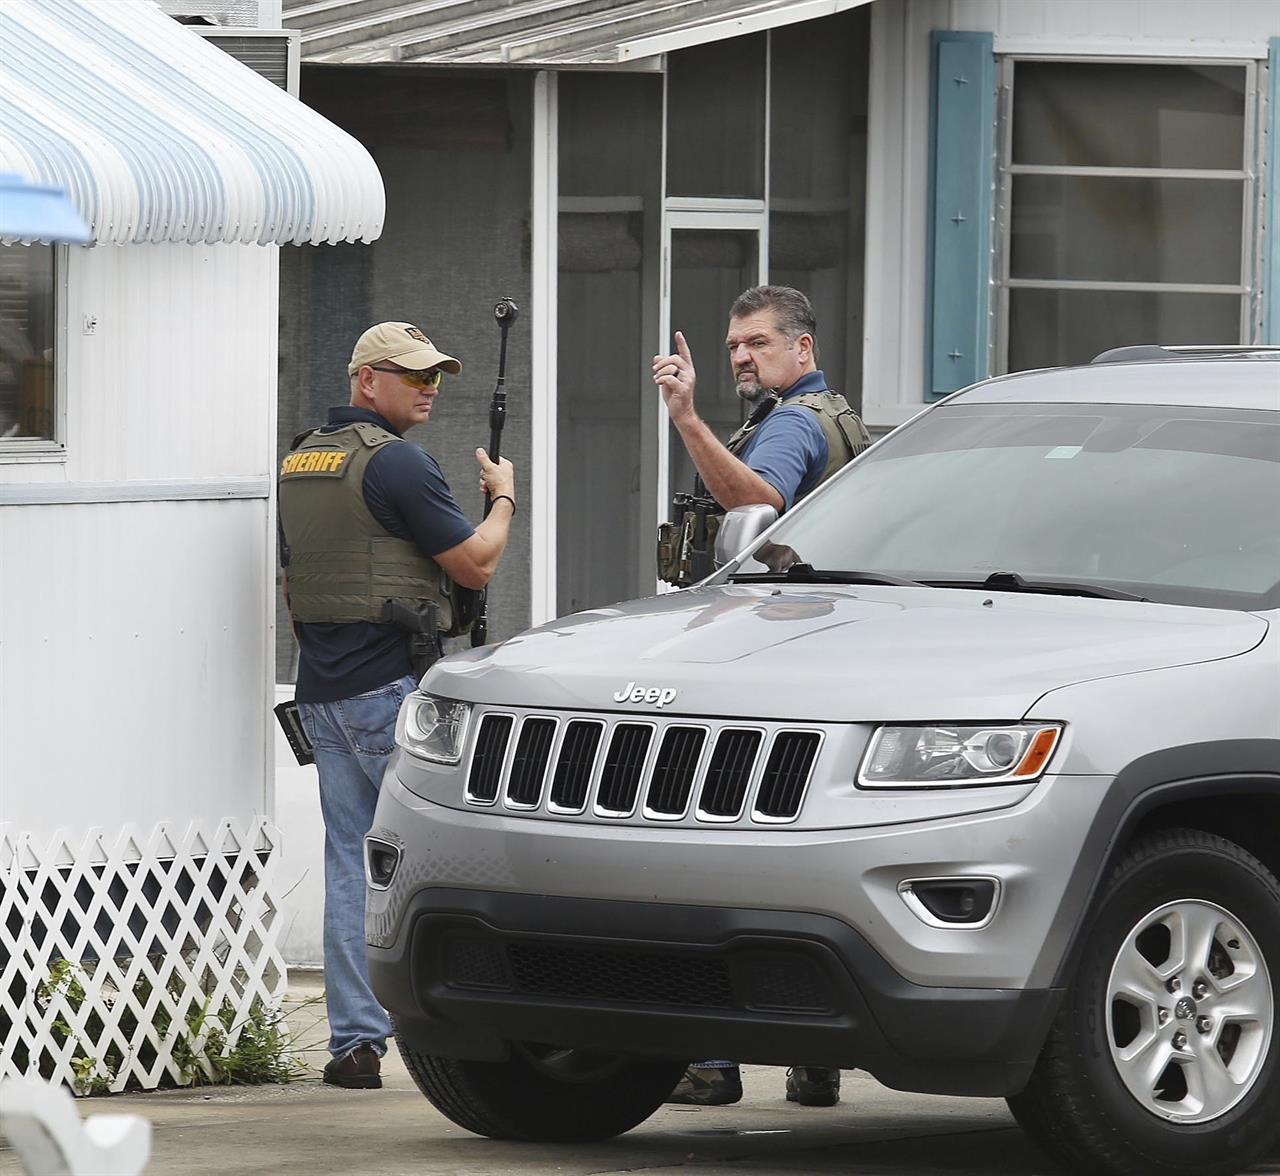 Colorado Shooting Radio Traffic: Factory Shooting Leaves 2 Teens Without Mother Or Father